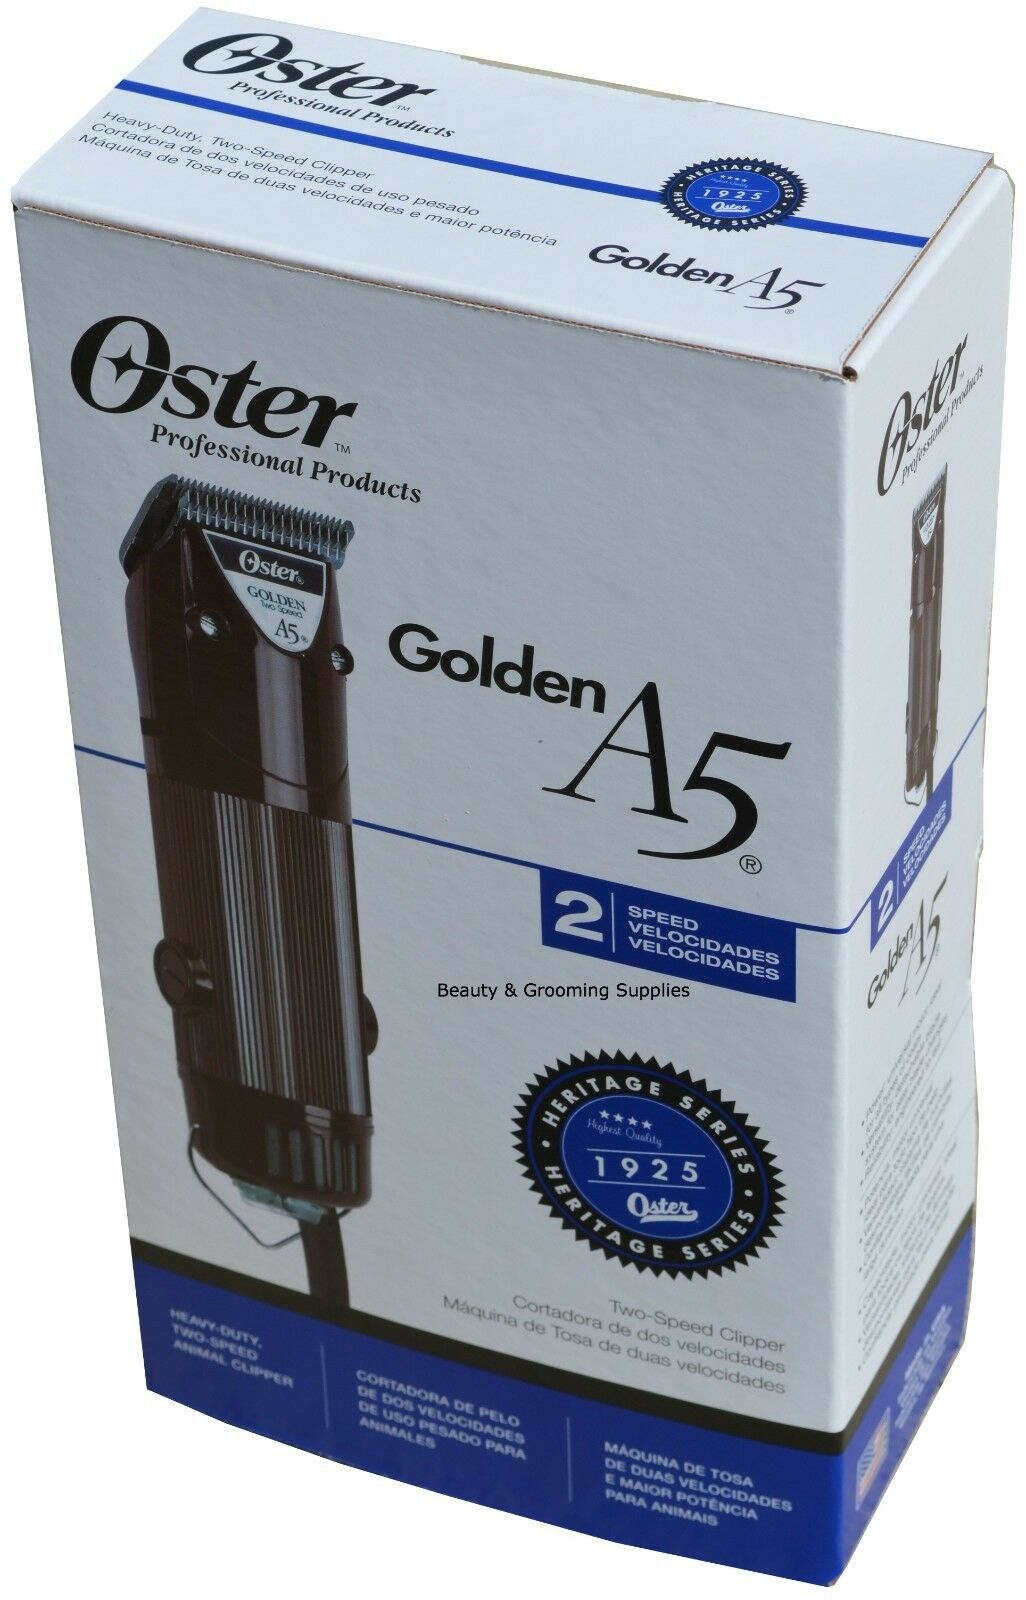 Oster GOLDEN A5 Professional 220v Clipper 1133963 Two Speed CryogenX 78005140